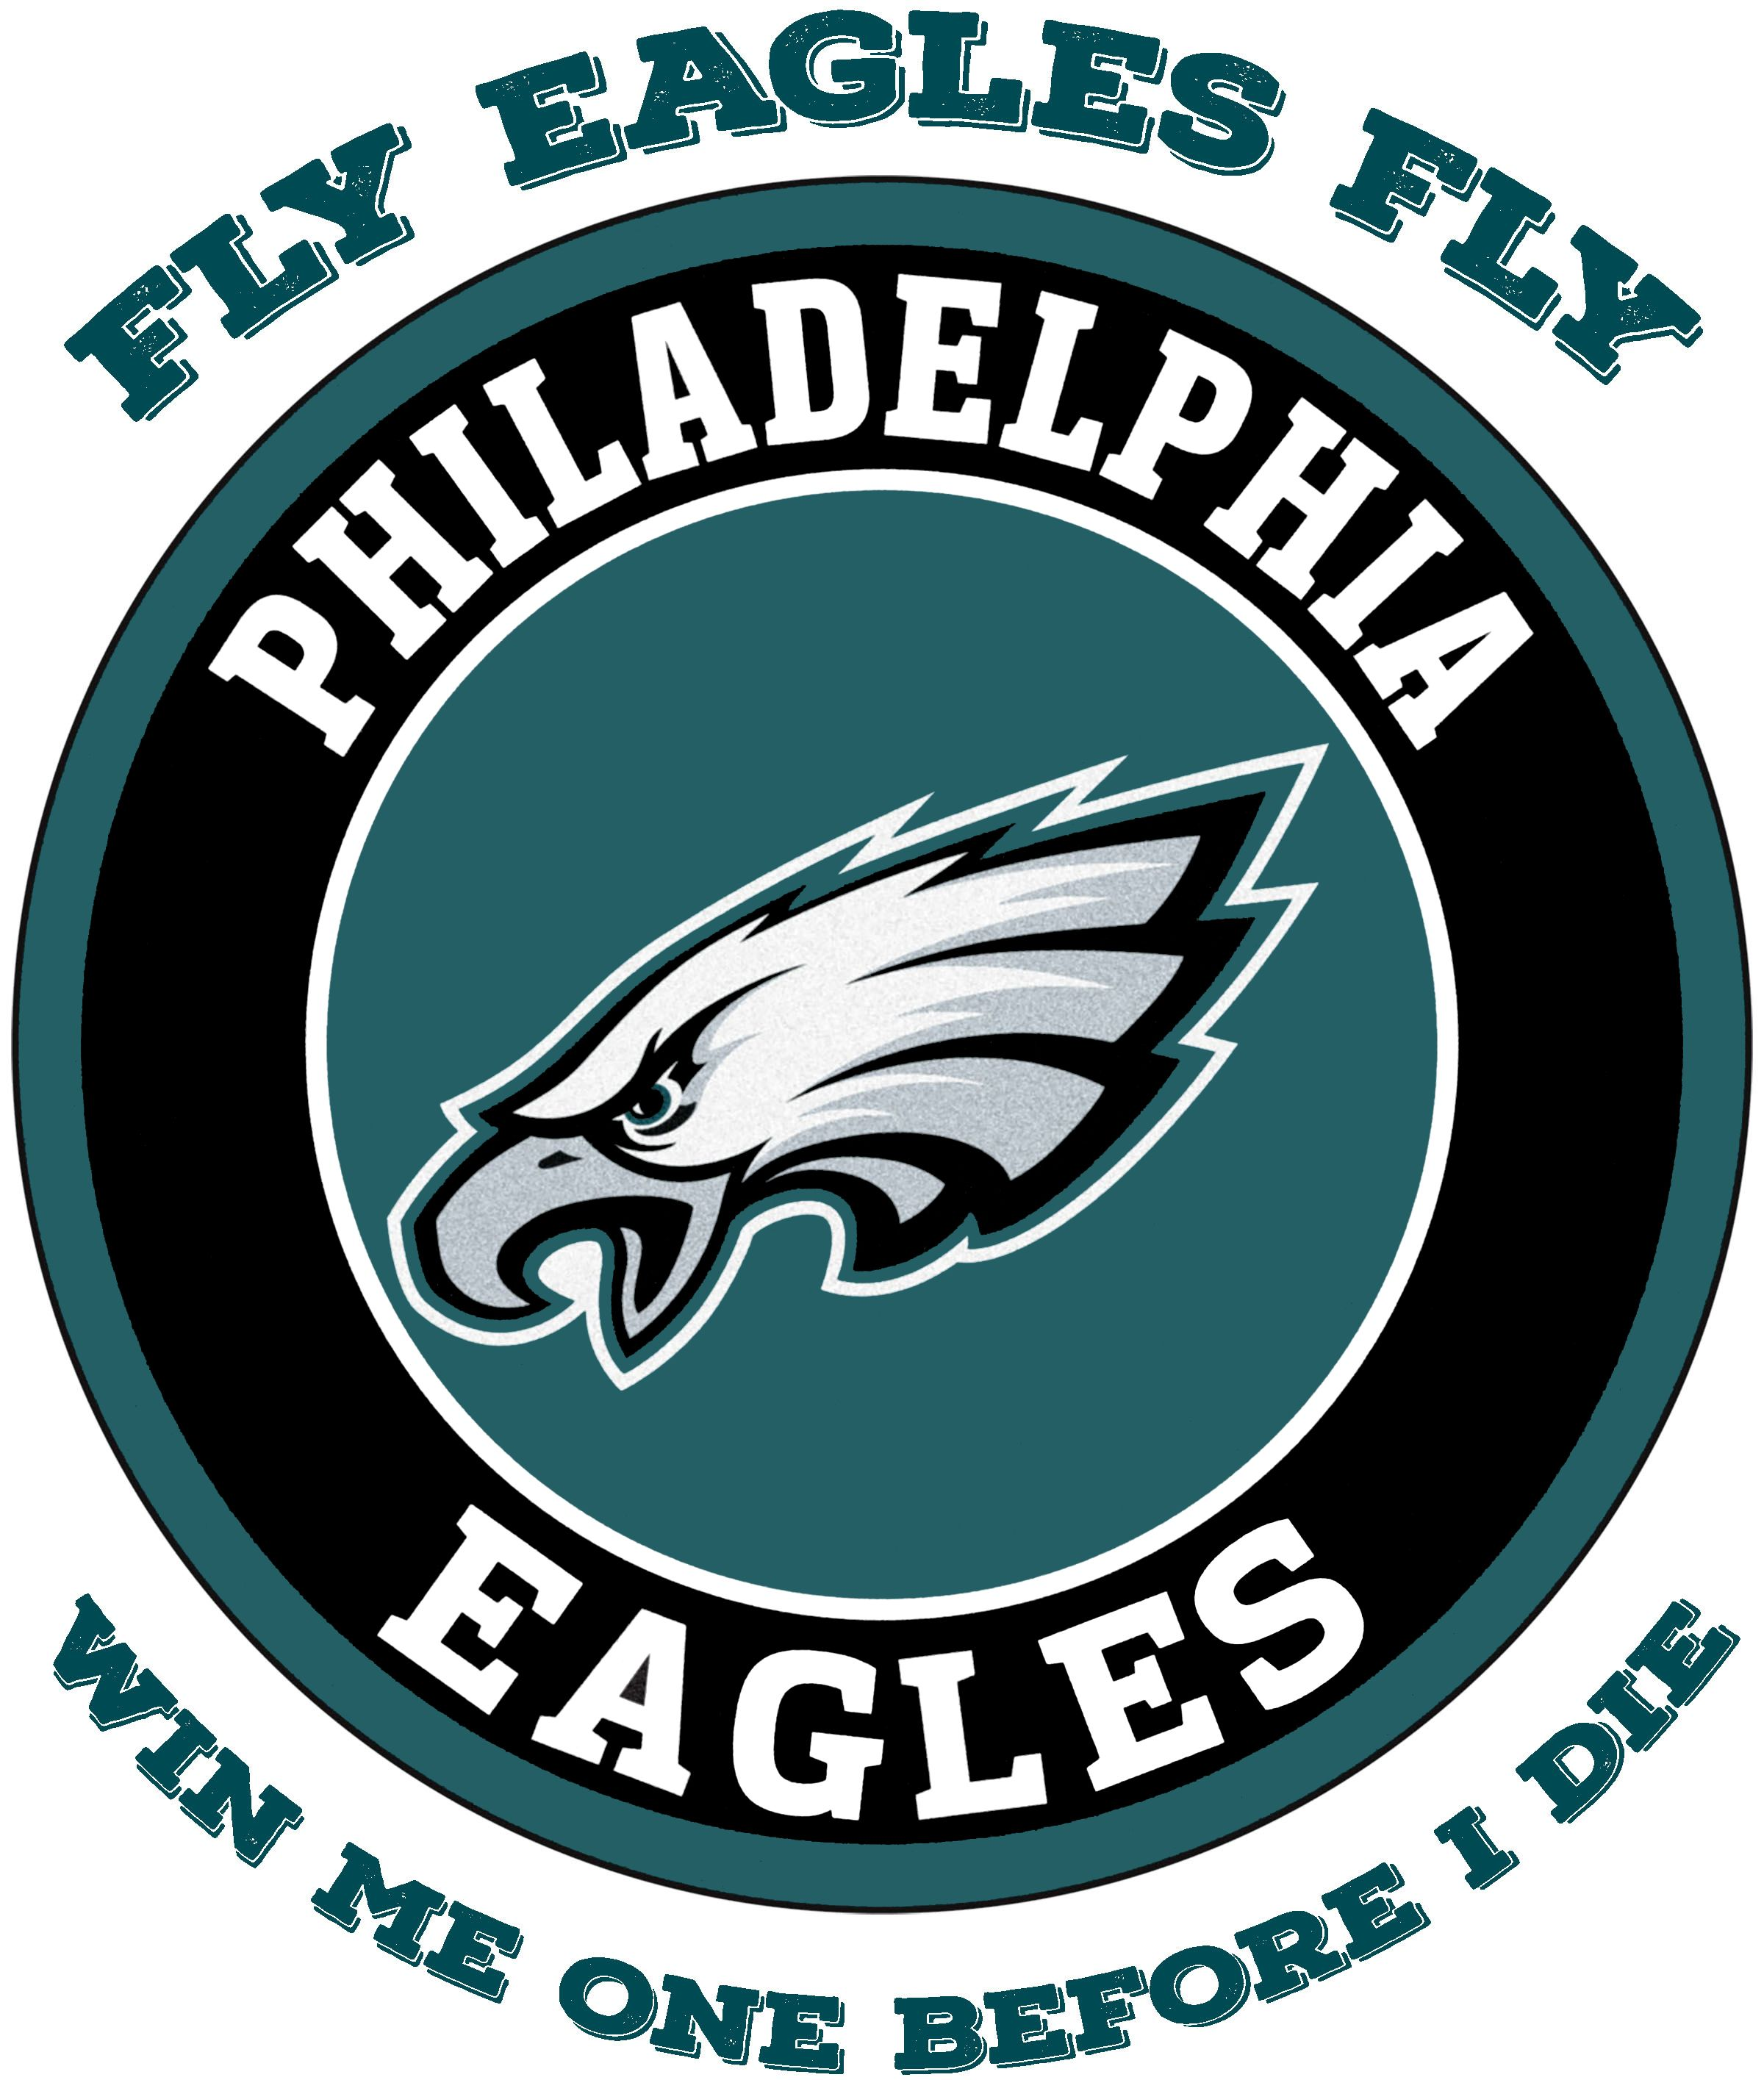 Image Result For Philadelphia Eagles Die Hard Fans Images